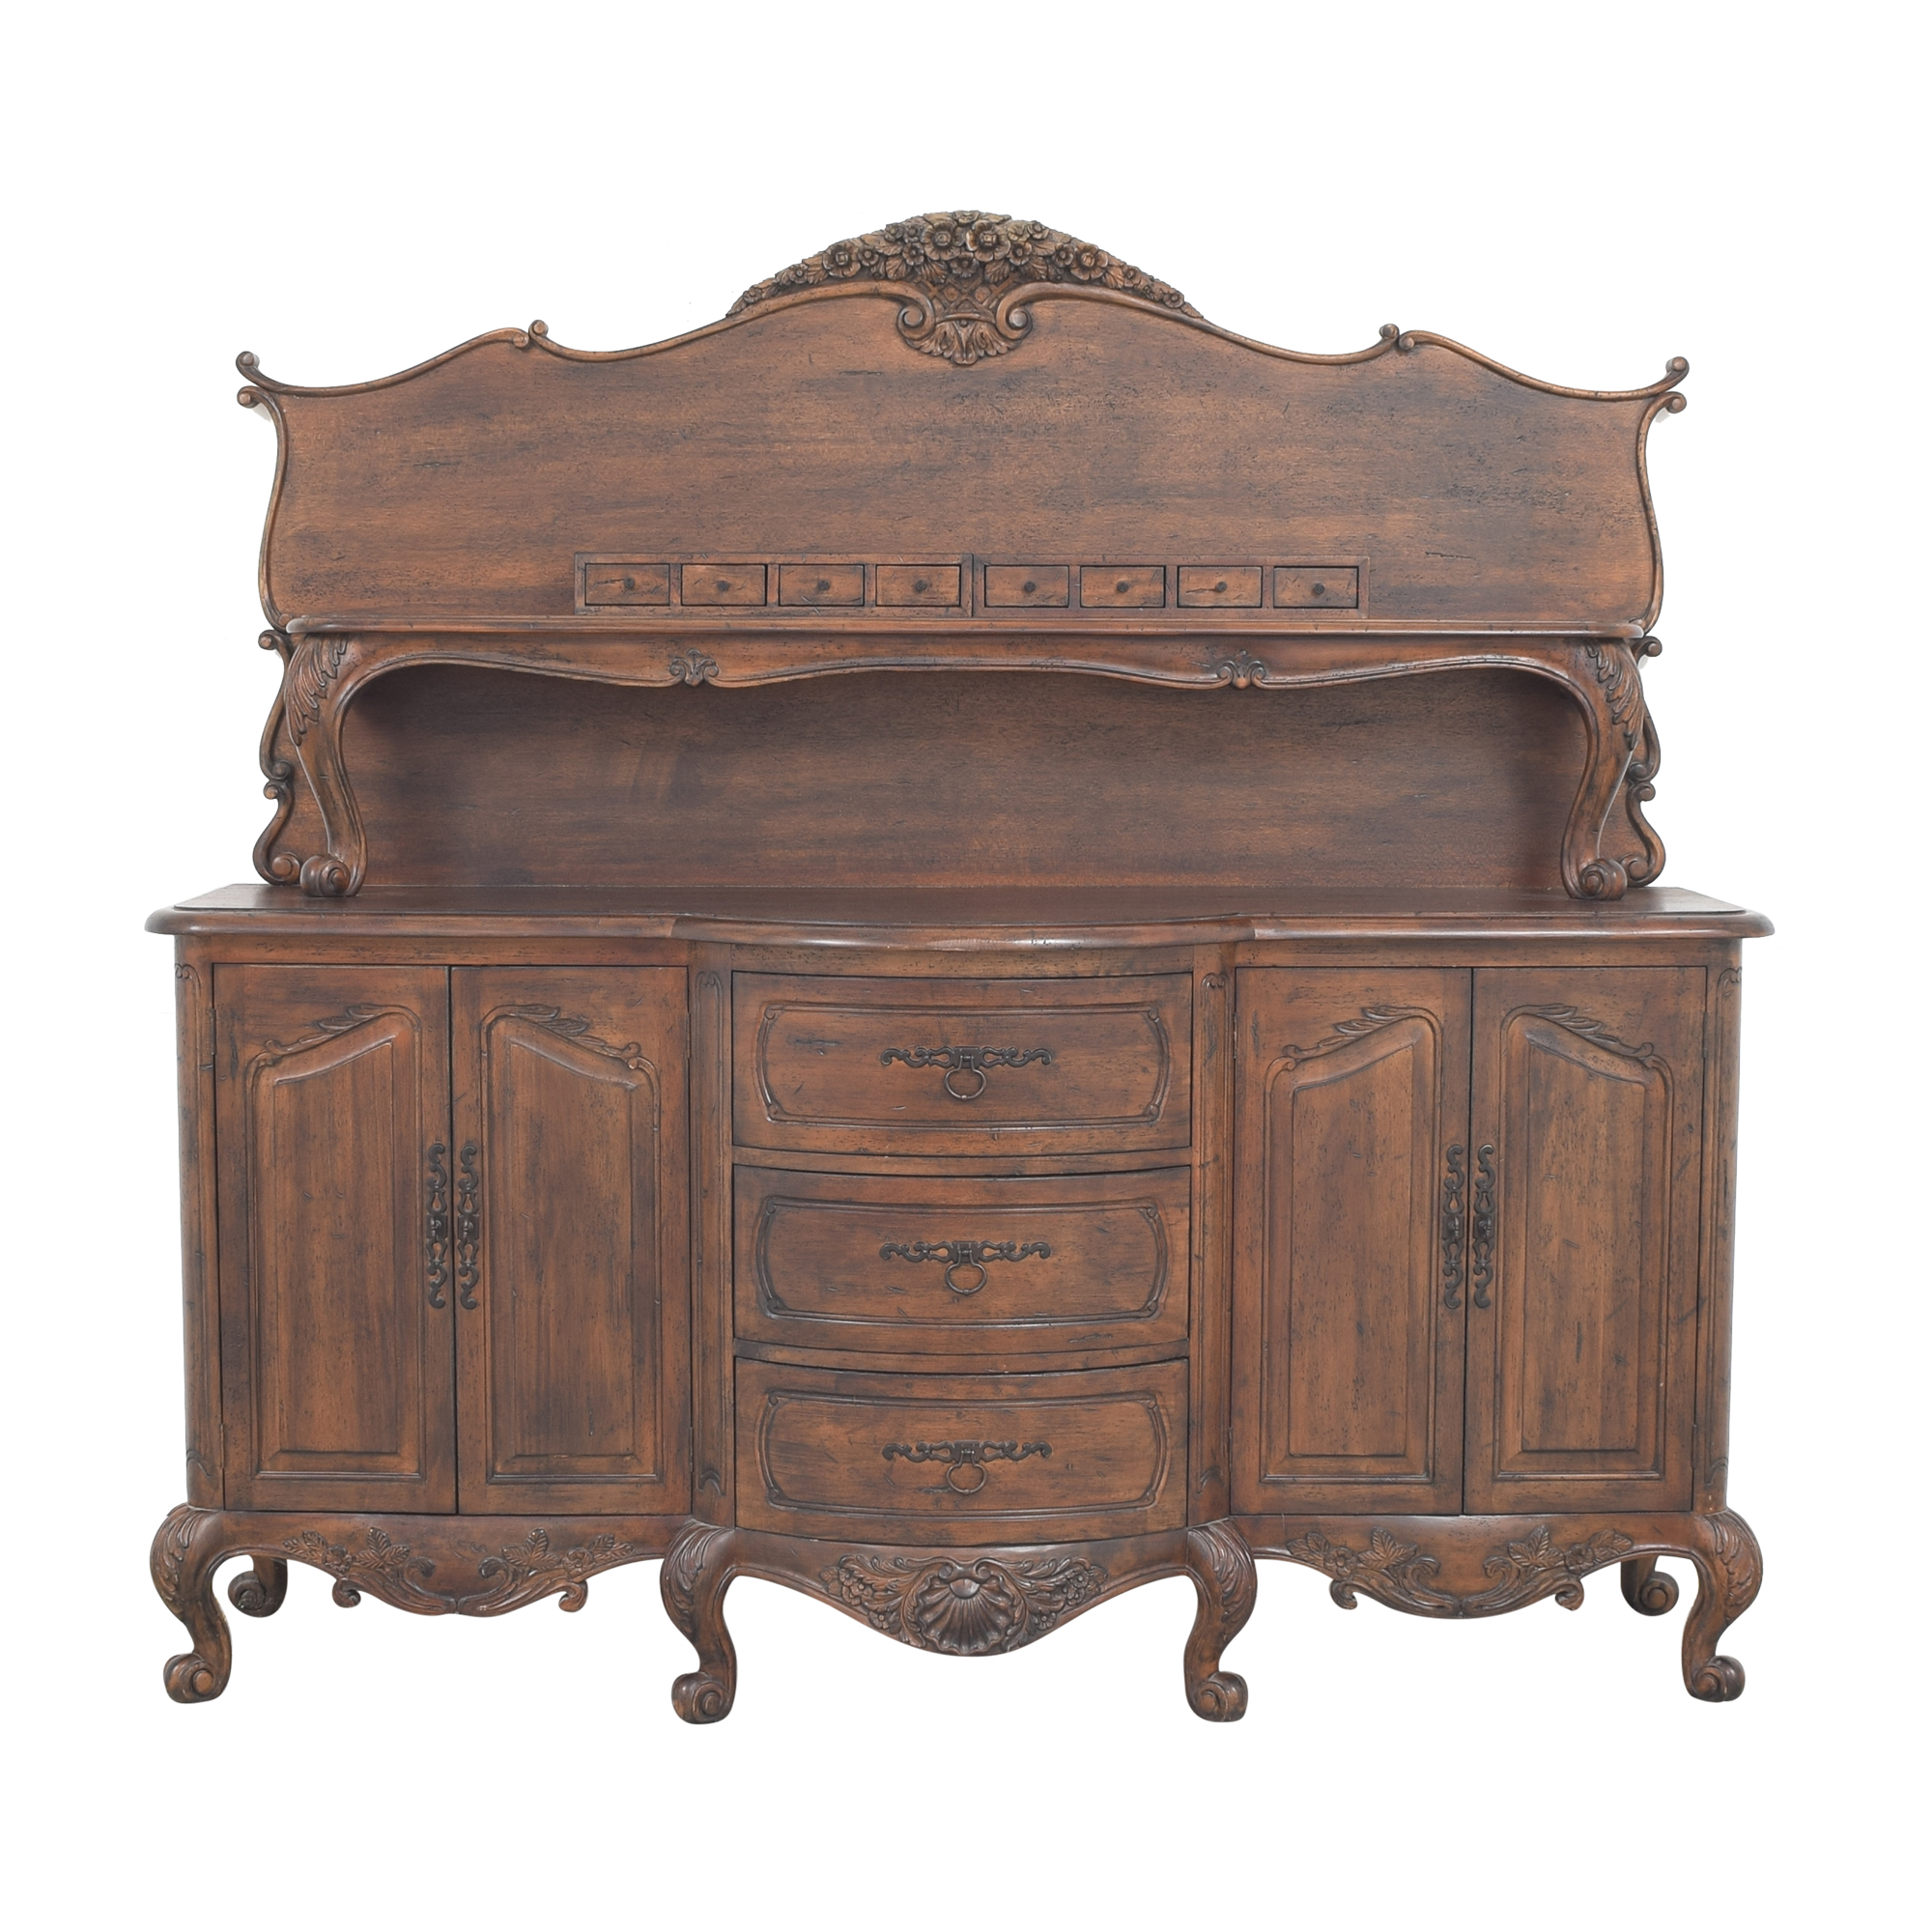 Habersham Habersham Dining Room Buffet Cabinet brown